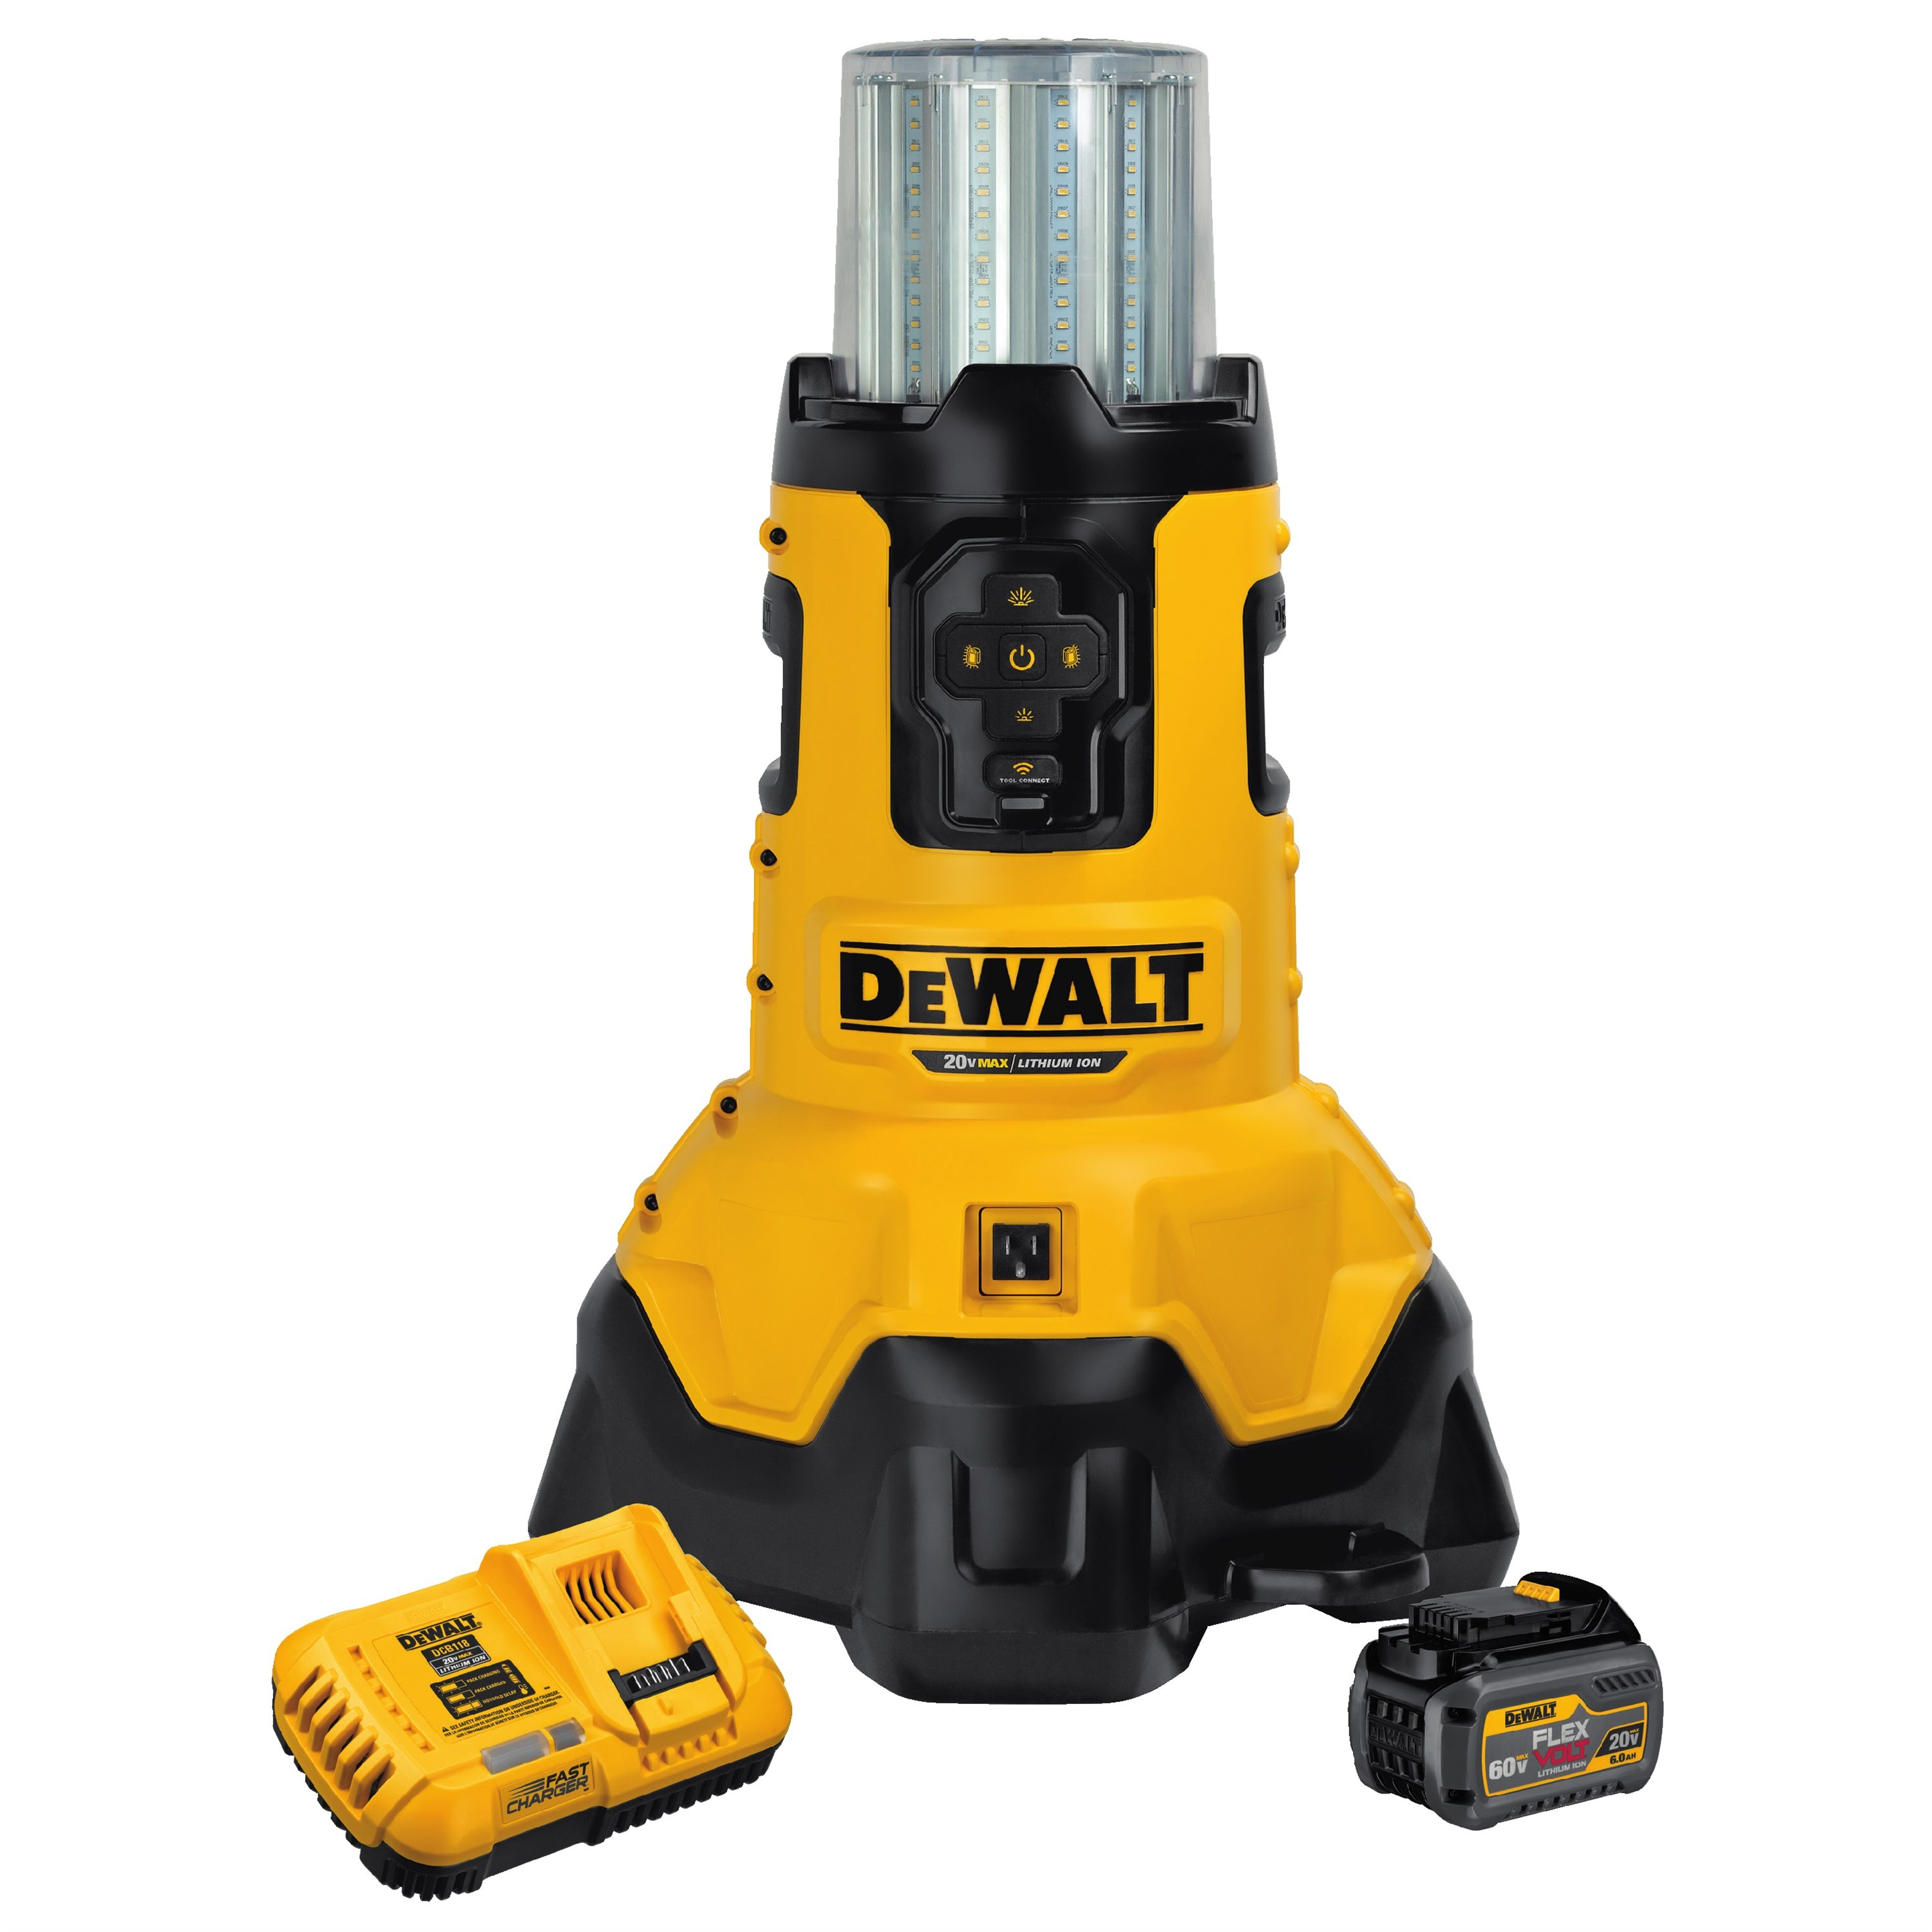 2 New Dewalt Flexvolt Tools Bluetooth Led Large Area